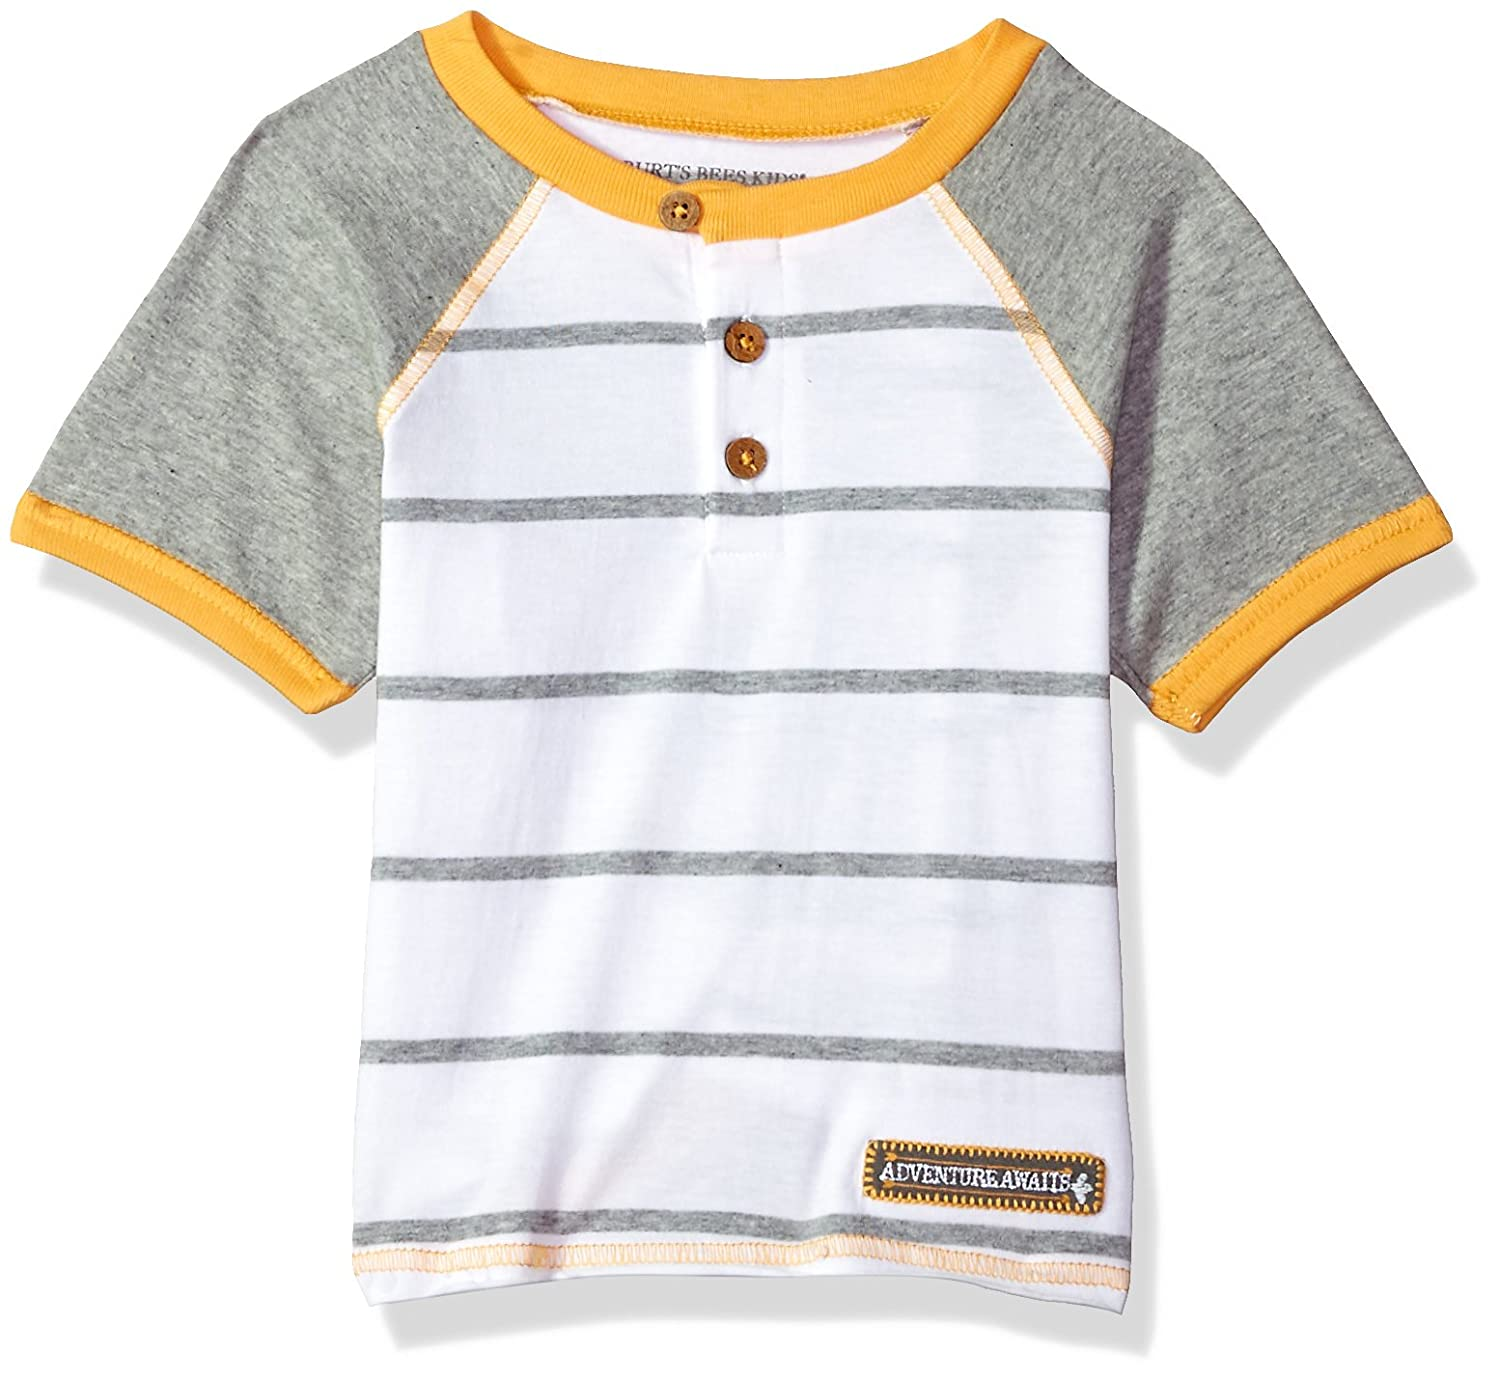 Burt's Bees Baby Boys T-Shirt, Short Sleeve V-Neck and Crewneck Tees, 100% Organic Cotton LY24723